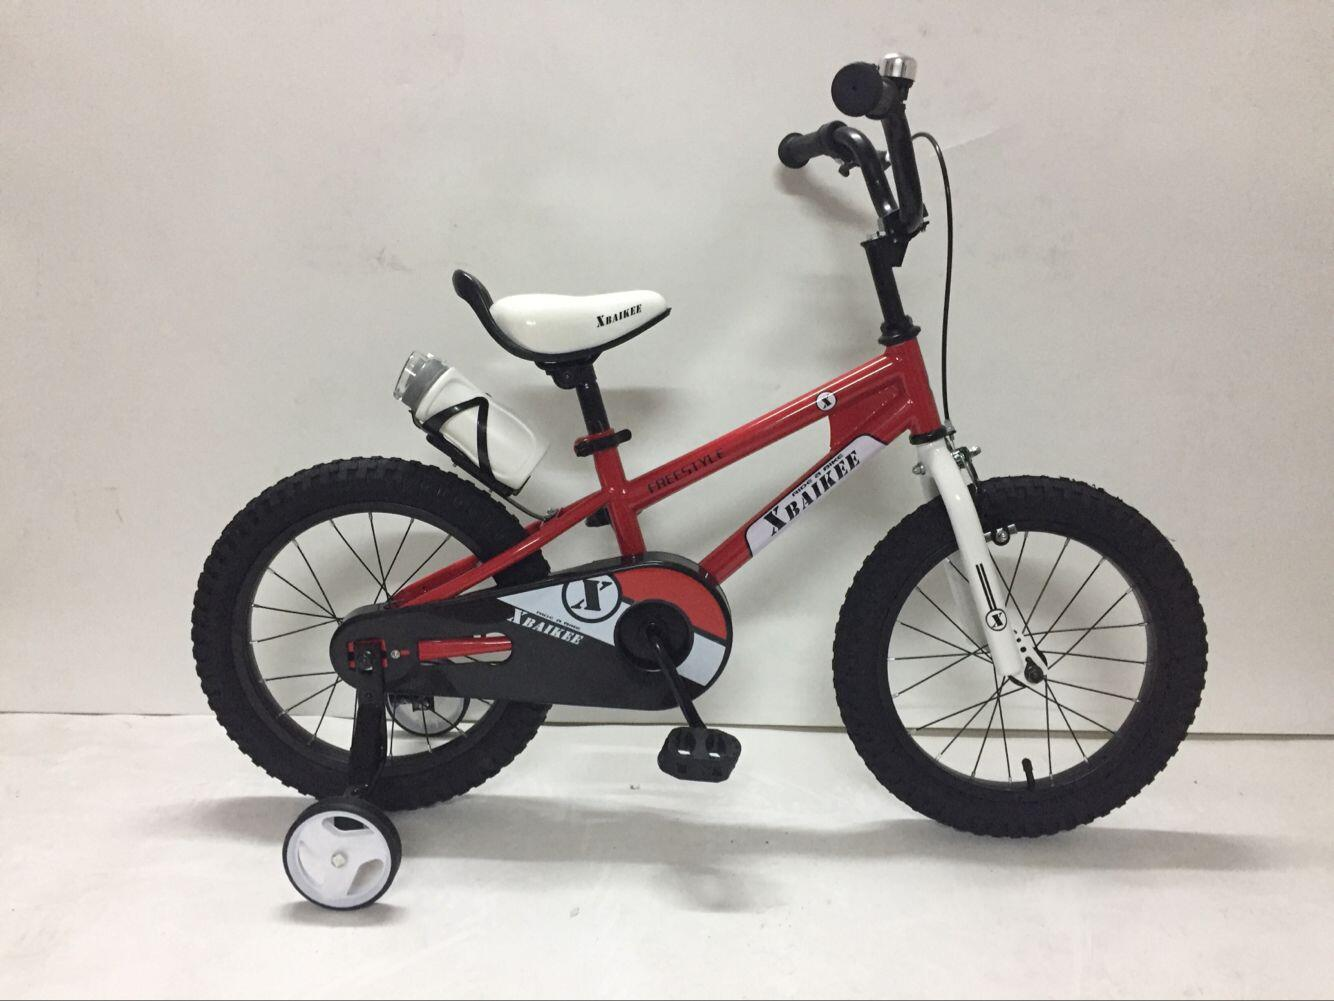 XBAIKEE children bicycle for children aged 2,3,4,5,6,7,8